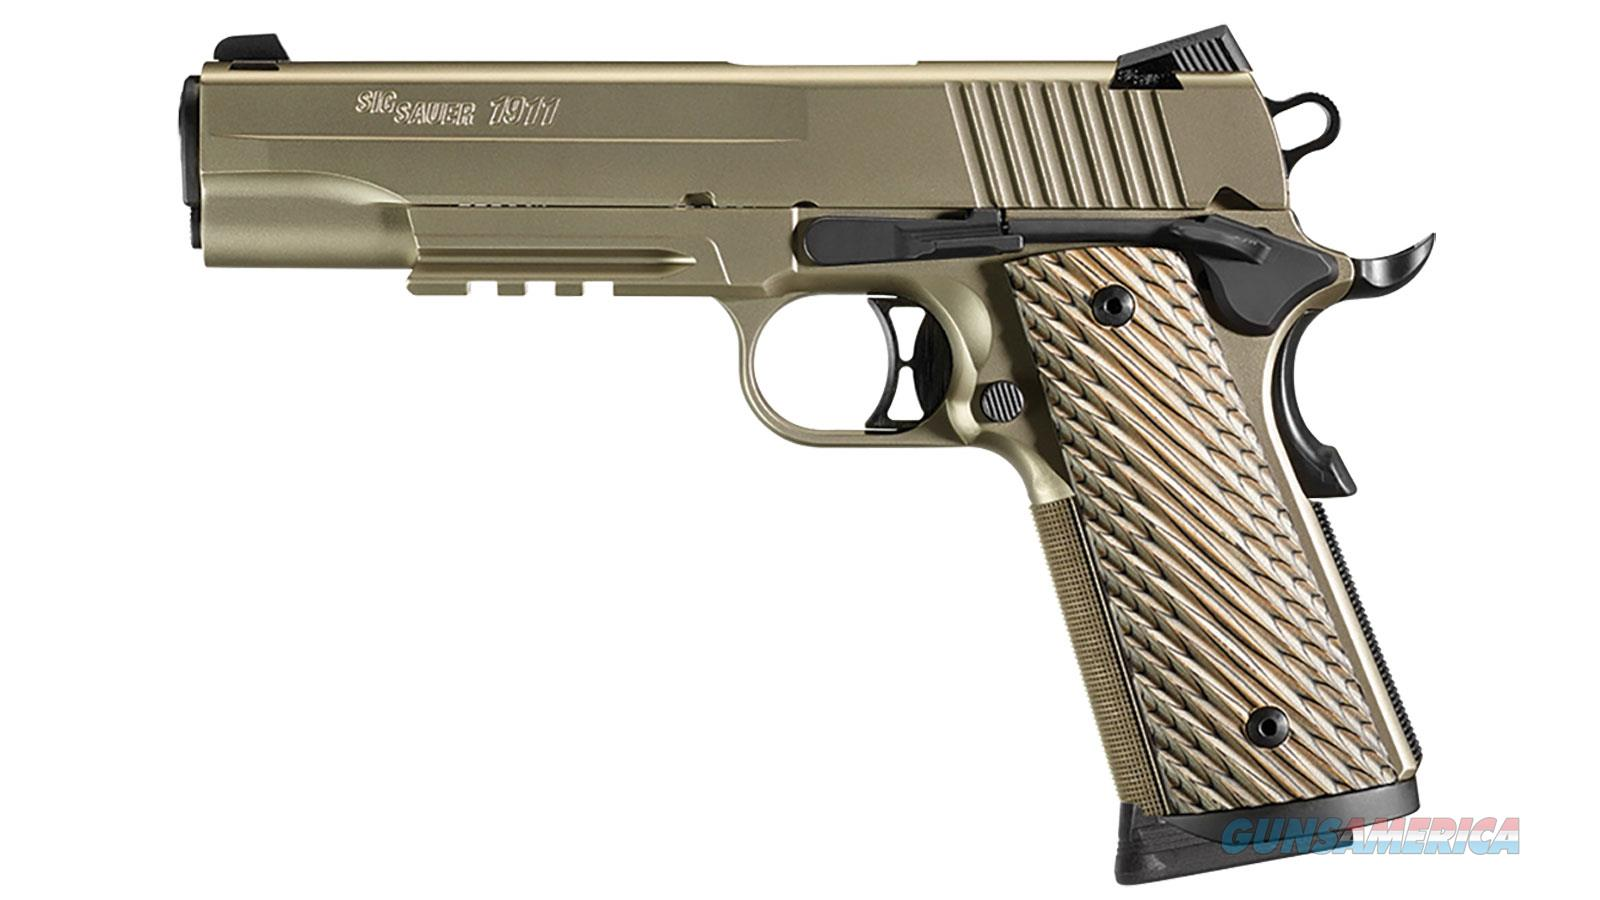 "Sig Sauer 1911R45ni 1911 Full Size Single 45 Automatic Colt Pistol (Acp) 5"" 8+1 Brown G10 Grip Nickel Pvd Stainless Steel 1911R-45-NI  Guns > Pistols > S Misc Pistols"